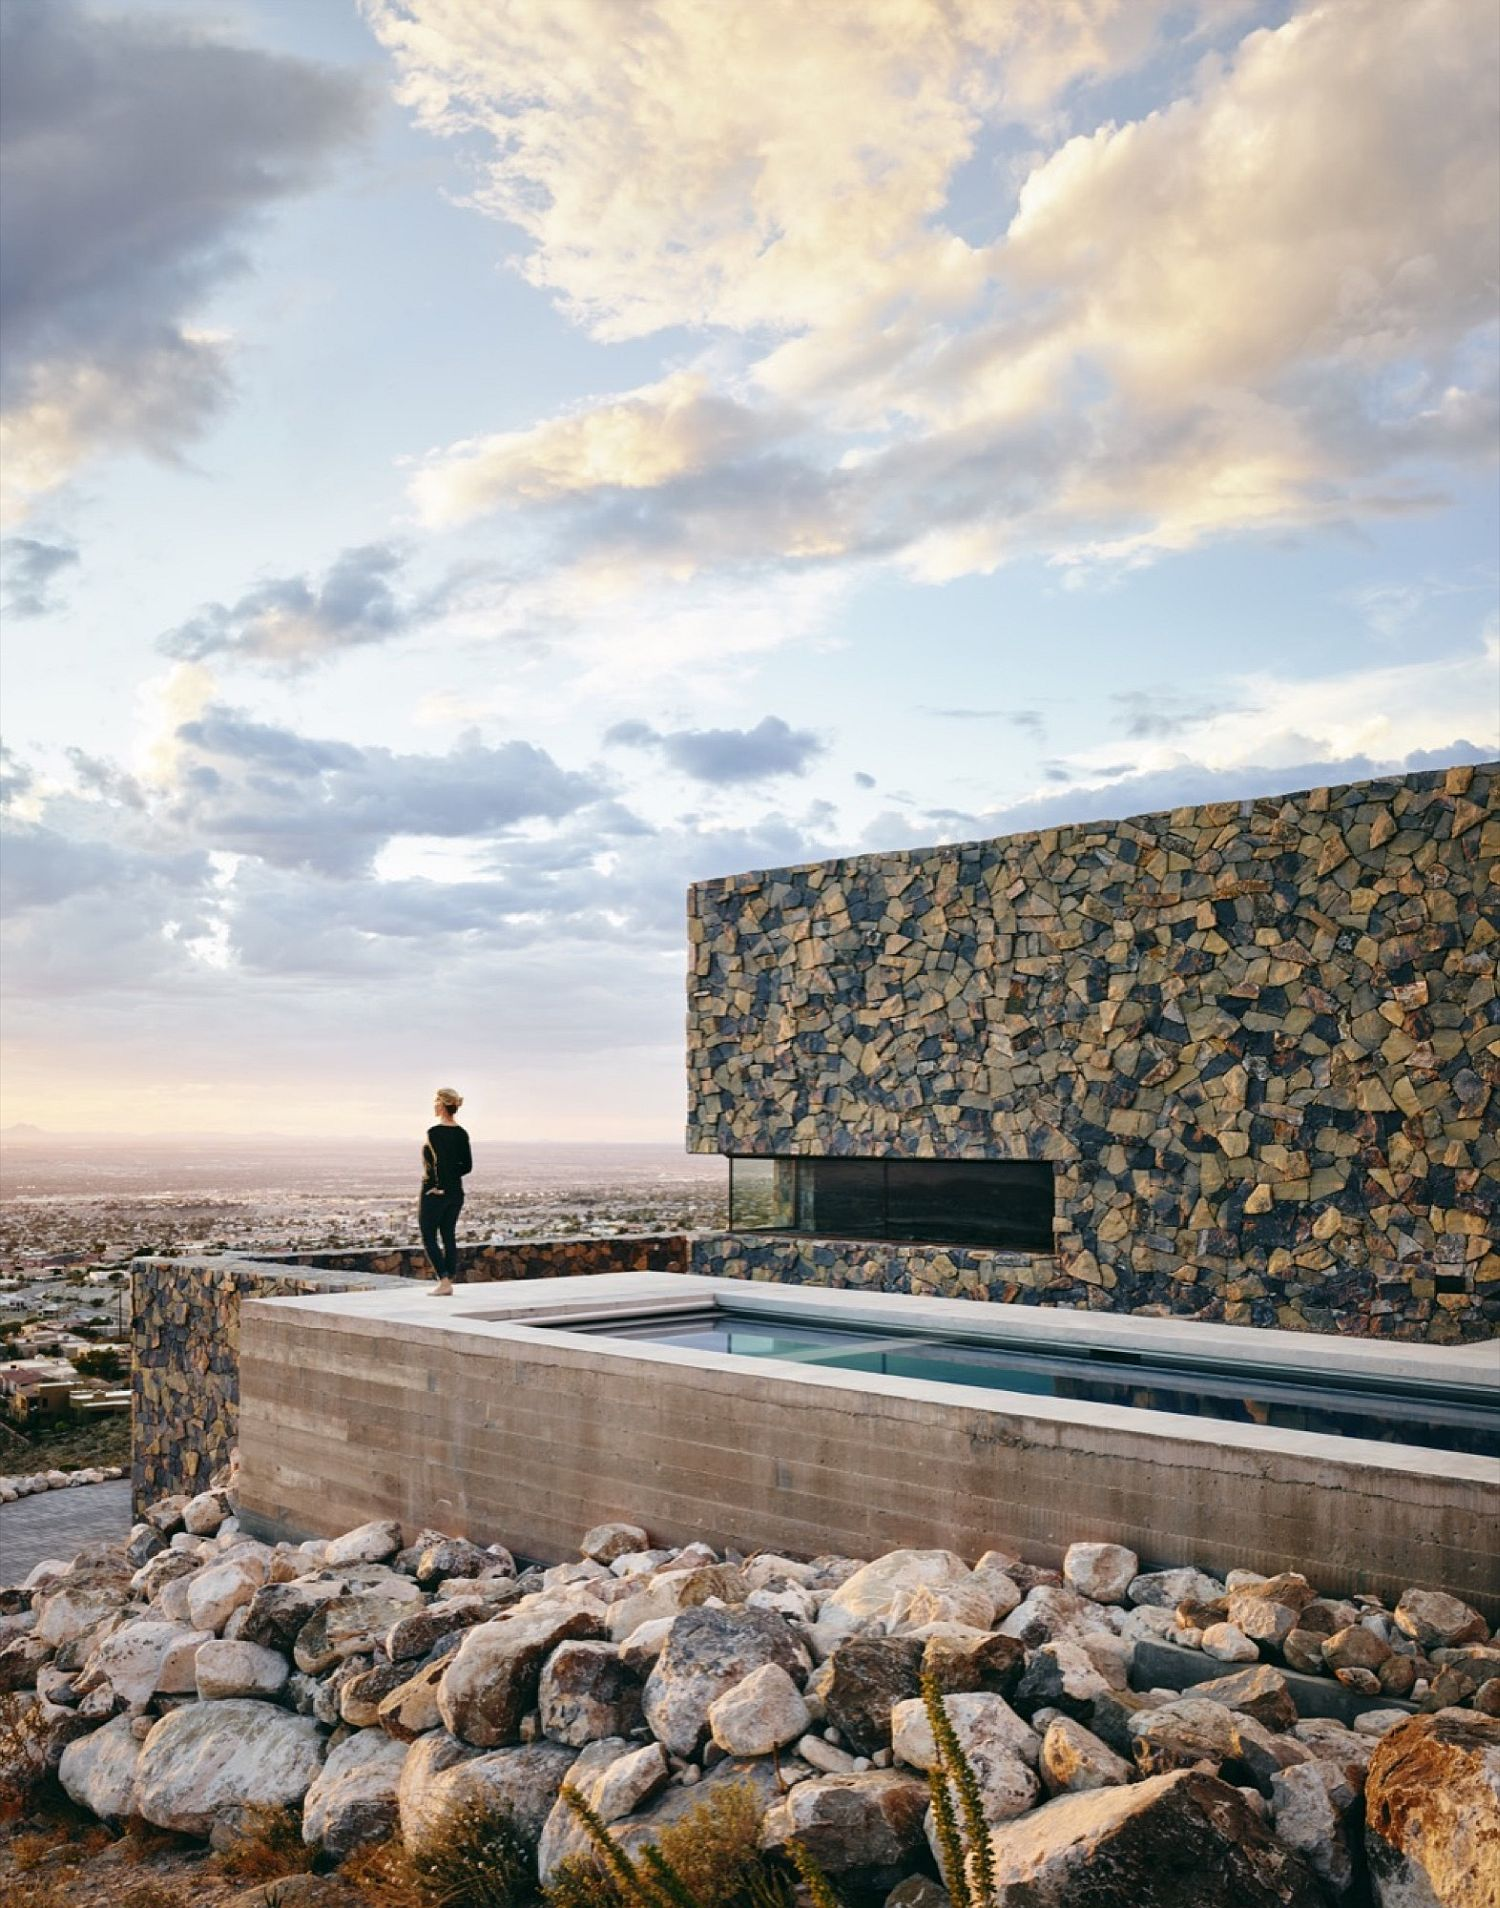 Stunning views of El Paso from the outdoor pool and deck